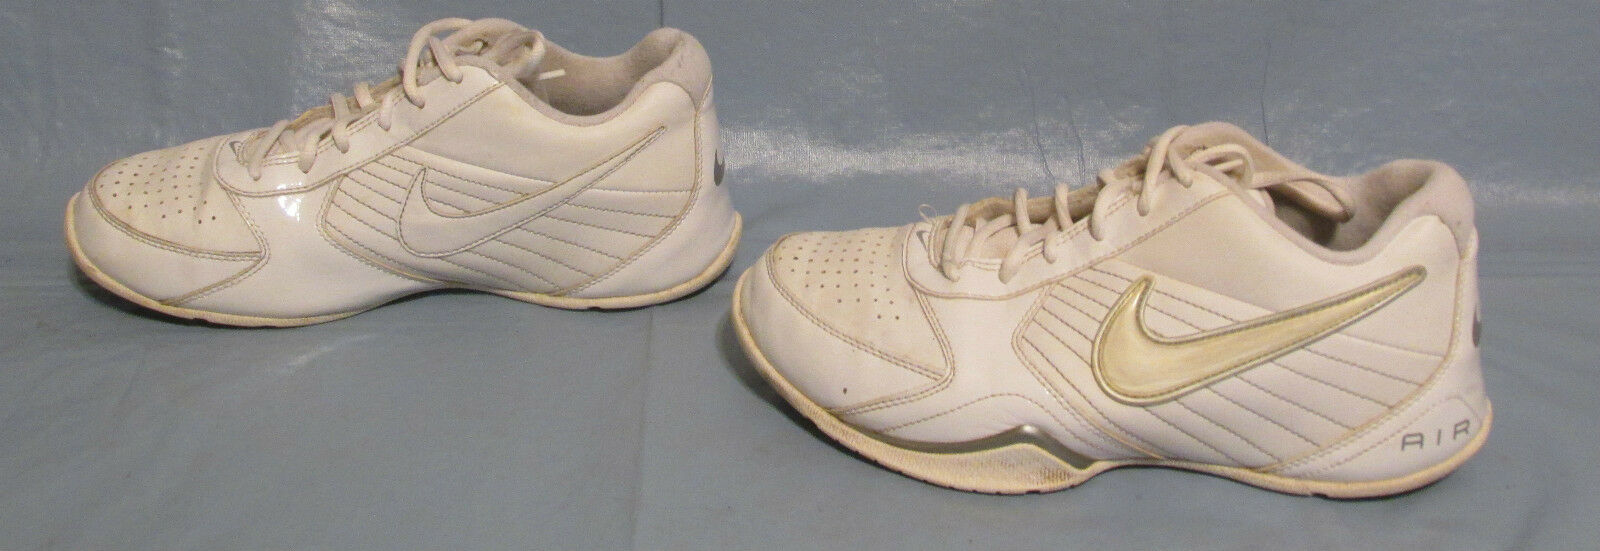 Mens White Nike Air Baseline Low Basketball Running Athletic Shoes Size 7 Used